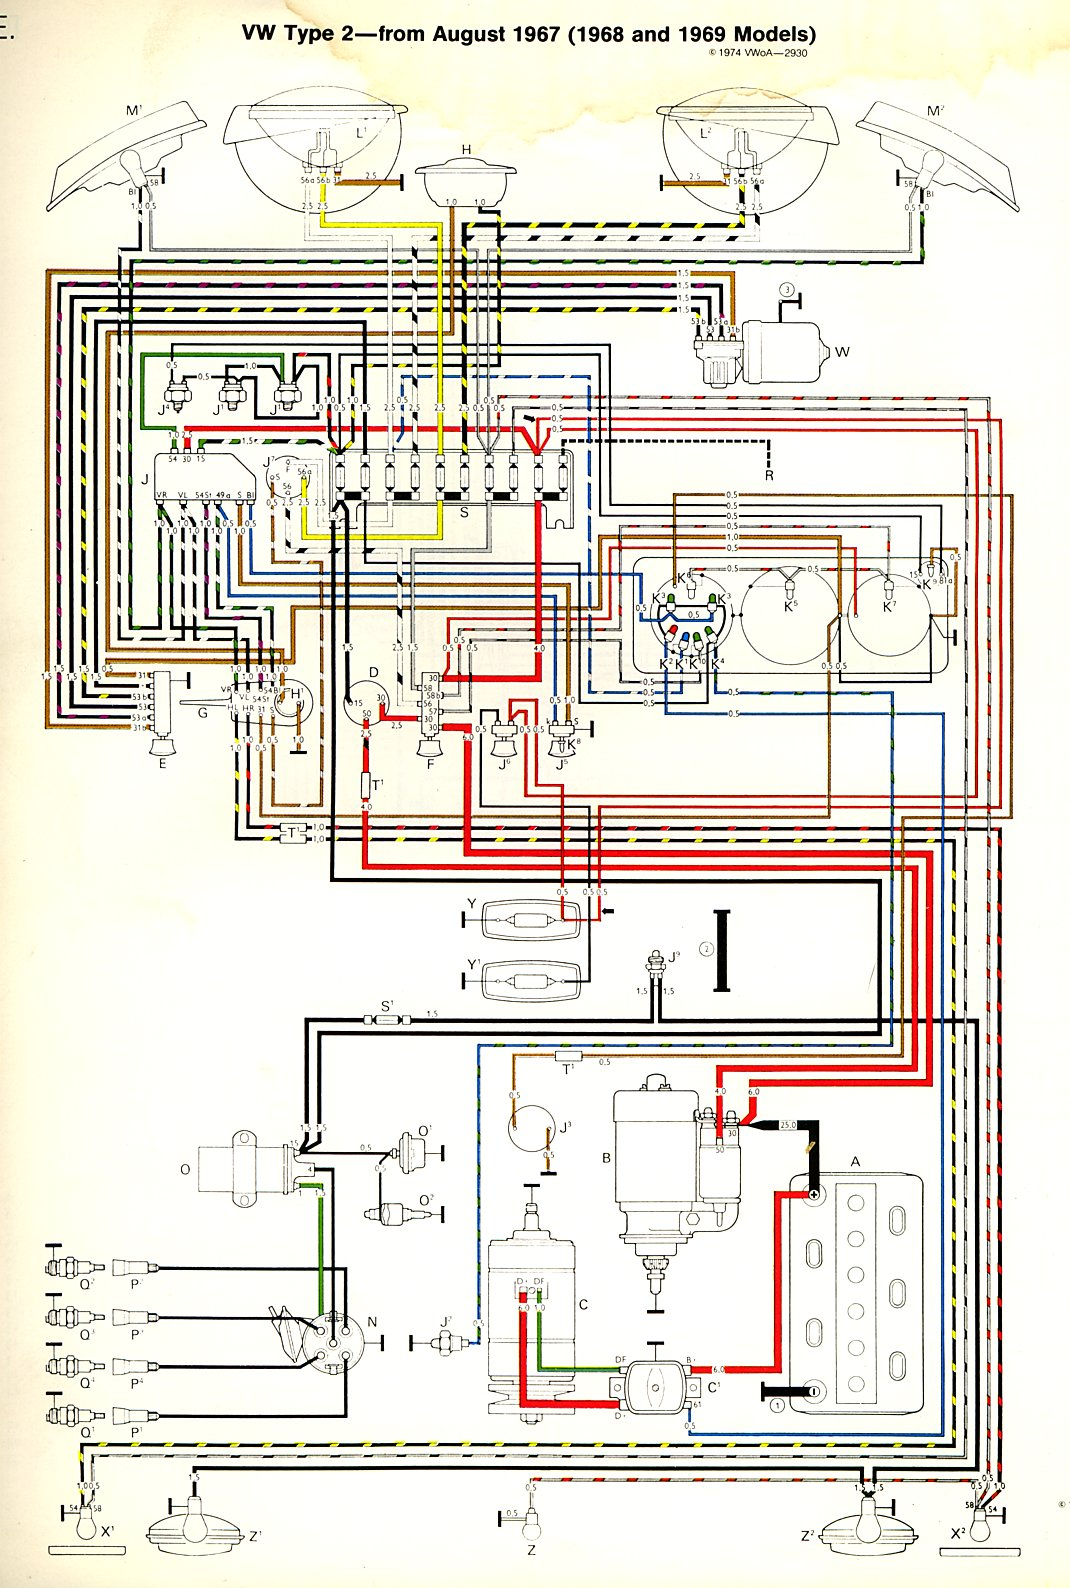 hight resolution of 1968 69 bus wiring diagram thegoldenbug com 2012 vw passat fuse box diagram vw bus fuse box diagram